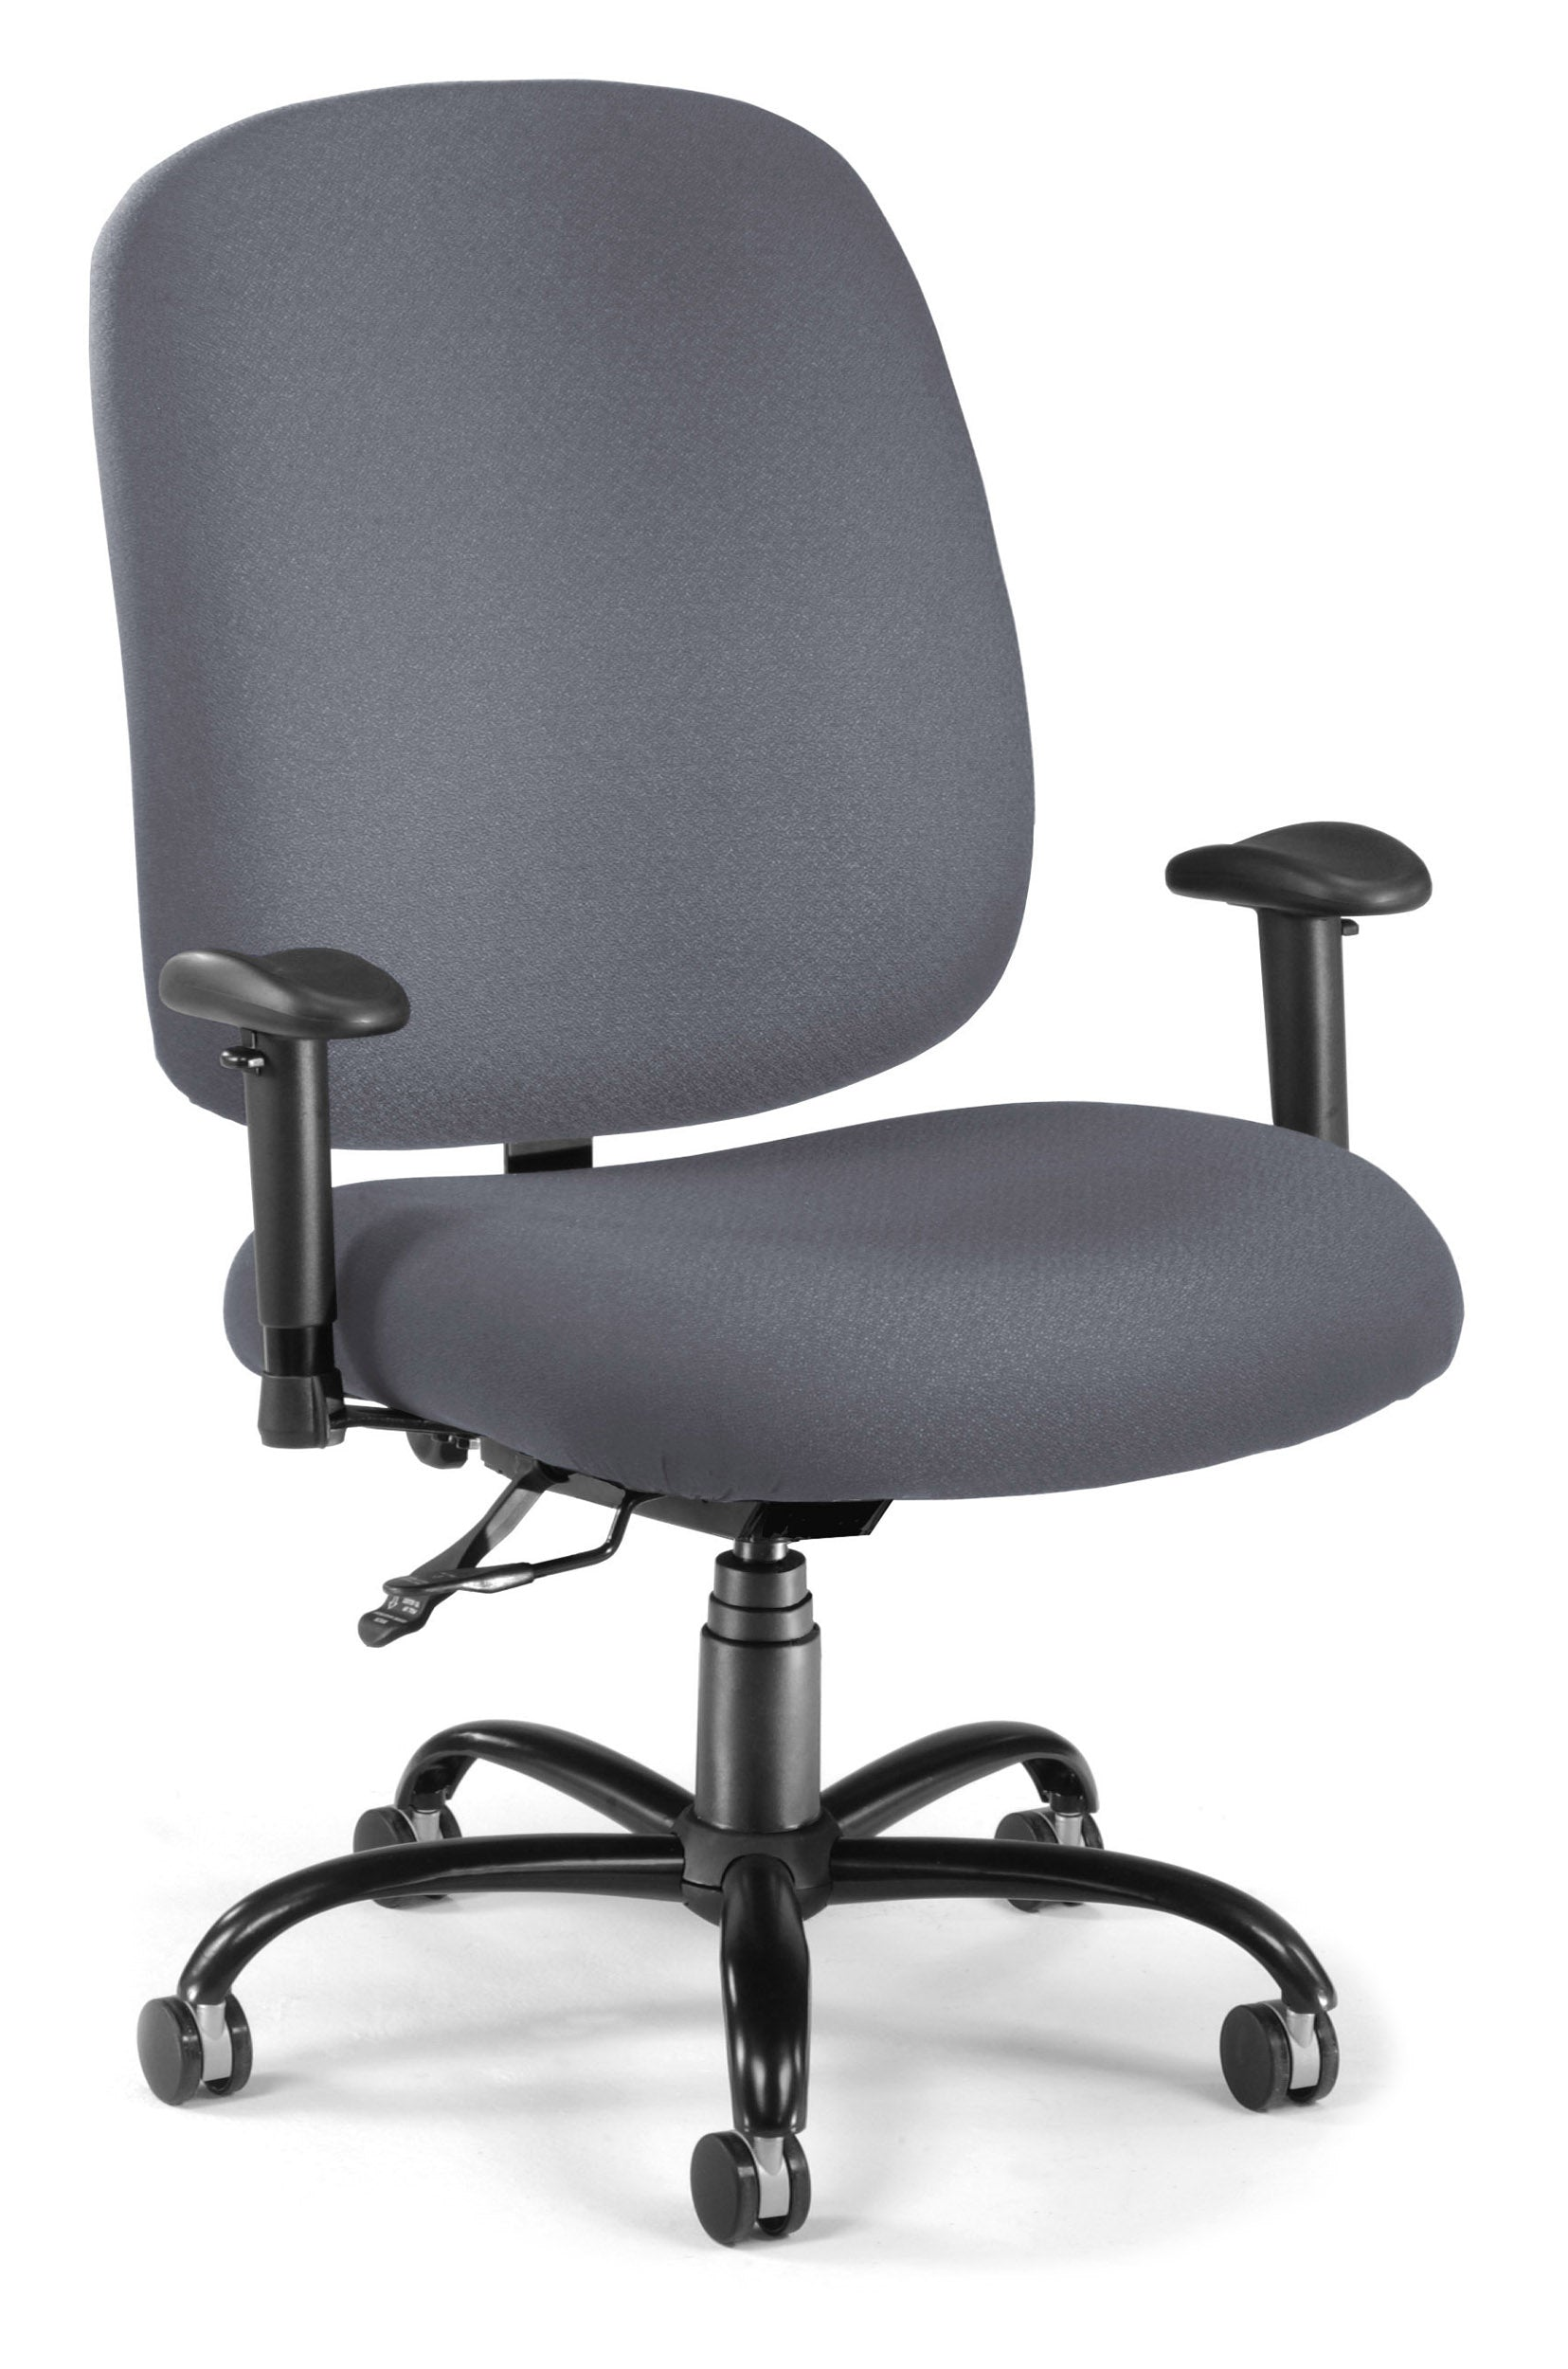 Ofminc Model 700-AA6 Big & Tall Upholstered Swivel Task Arms Chair